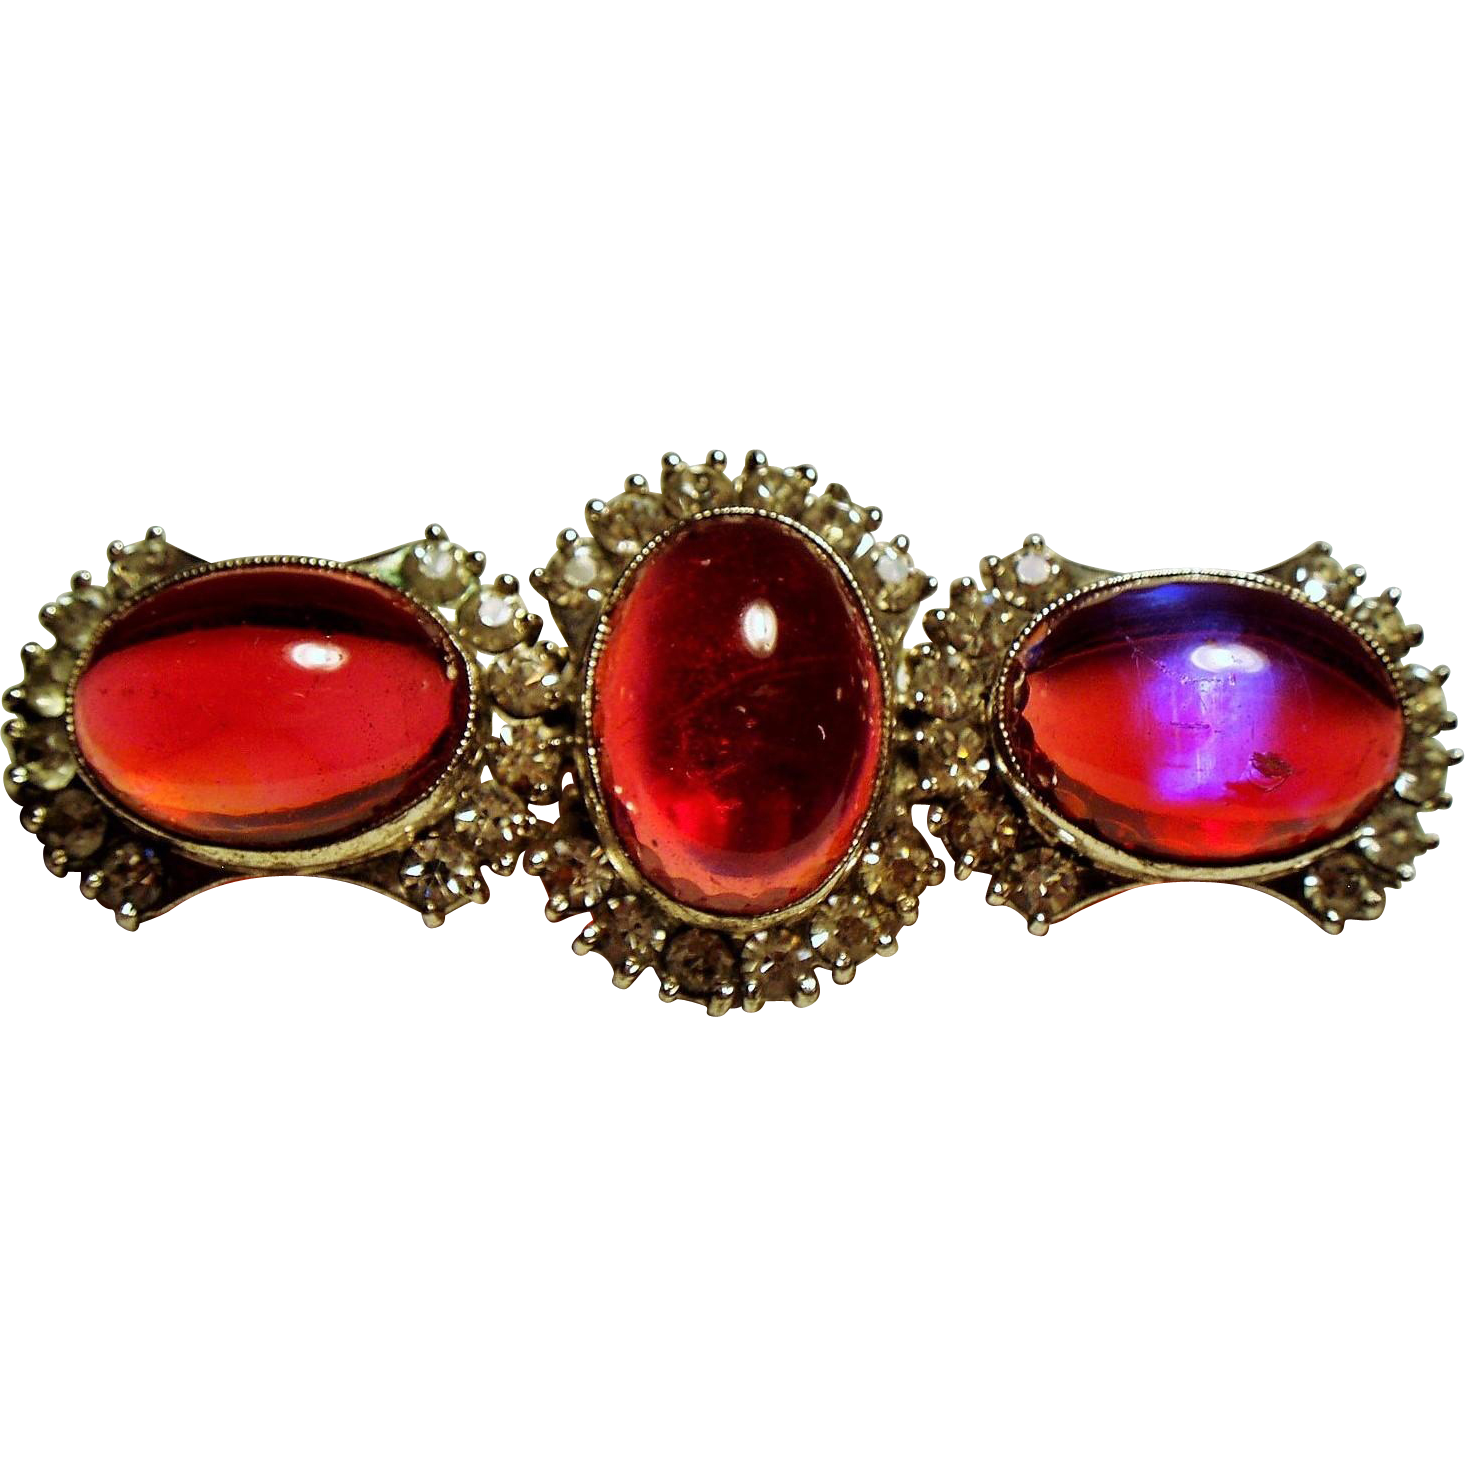 Vintage Glowing Dragons Breath Cabochon Three Stone Sterling Brooch